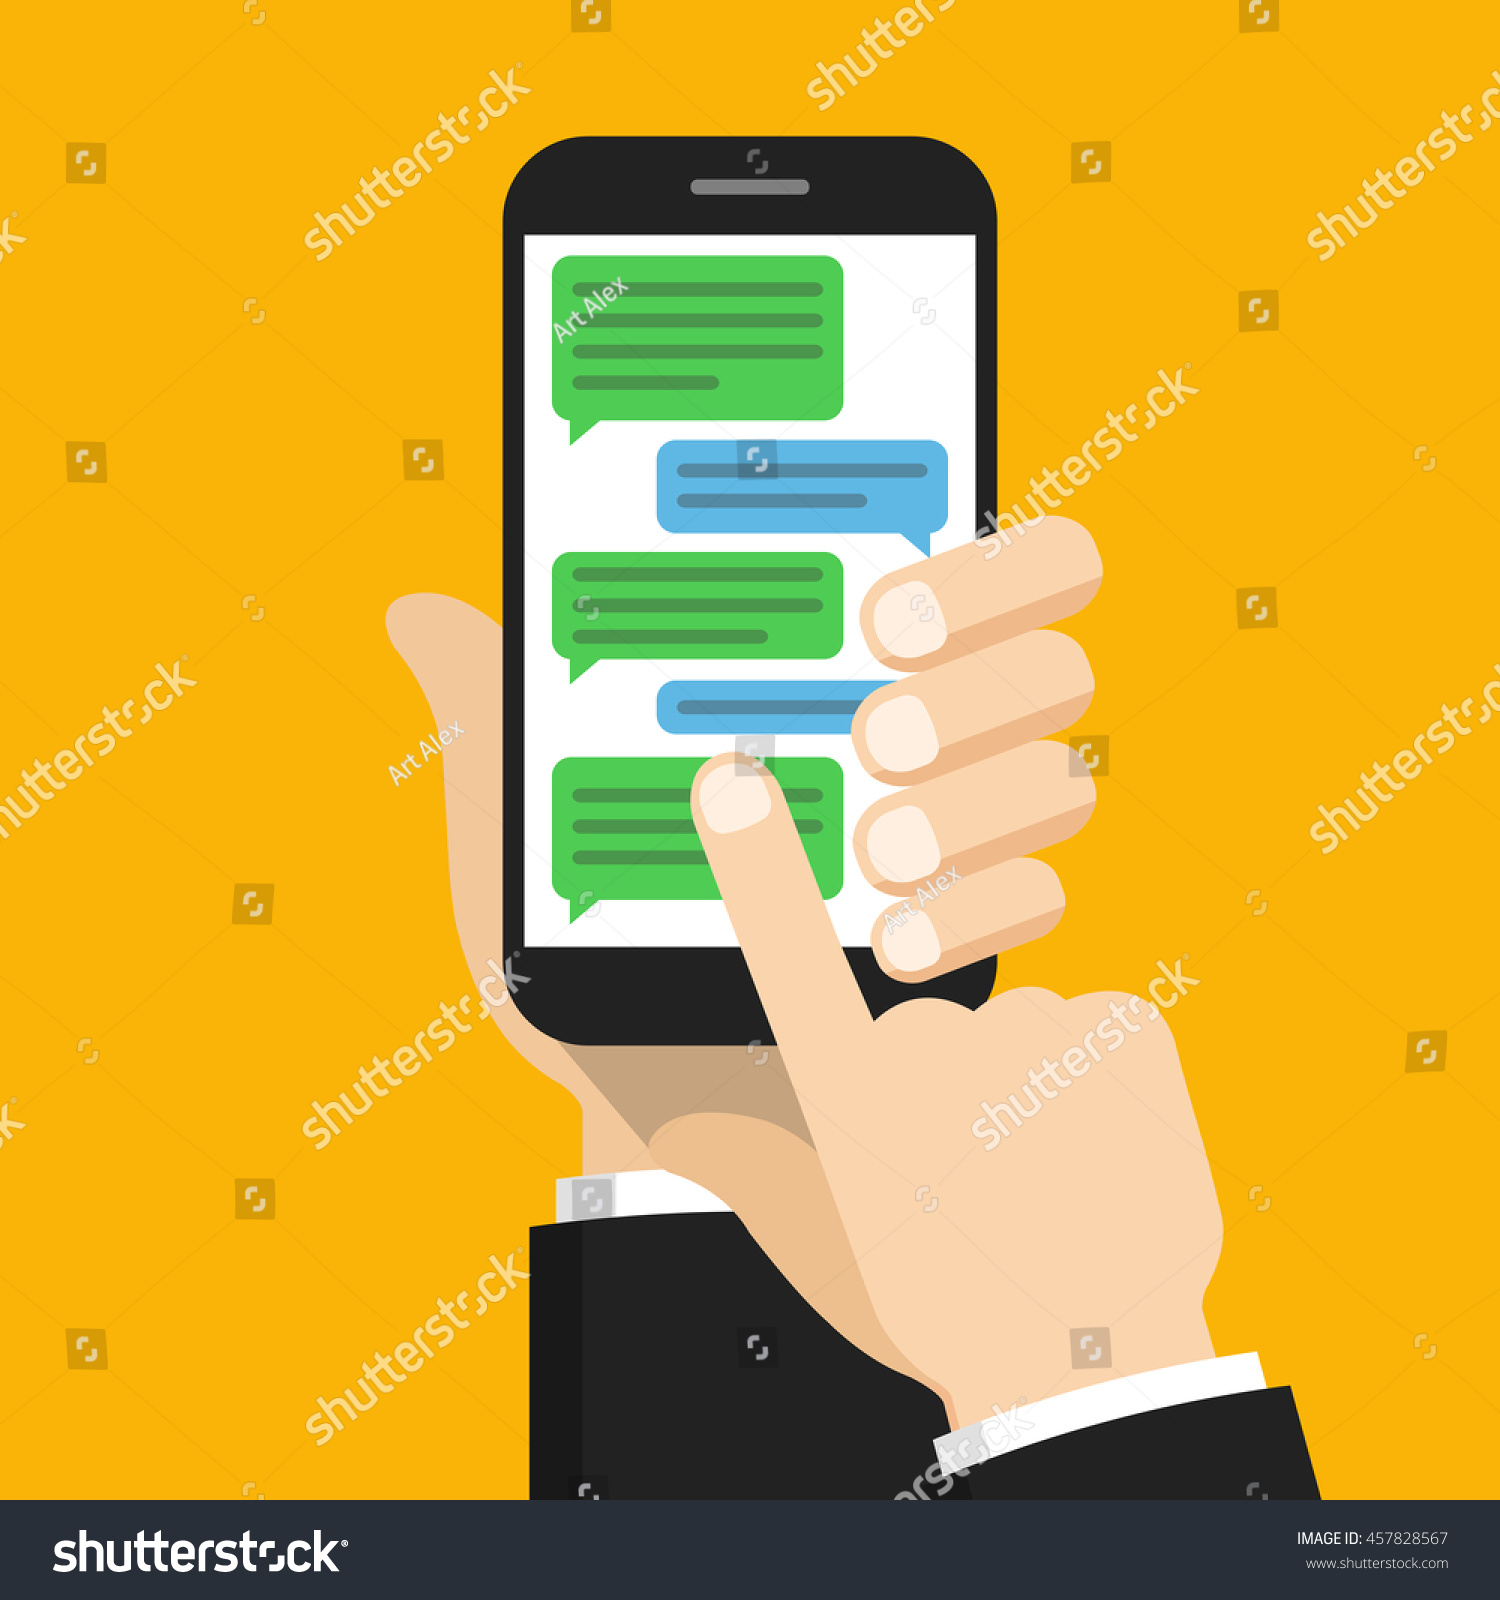 Text Messaging Concept On Screen Smartphone Stock Vector 457828567 ...